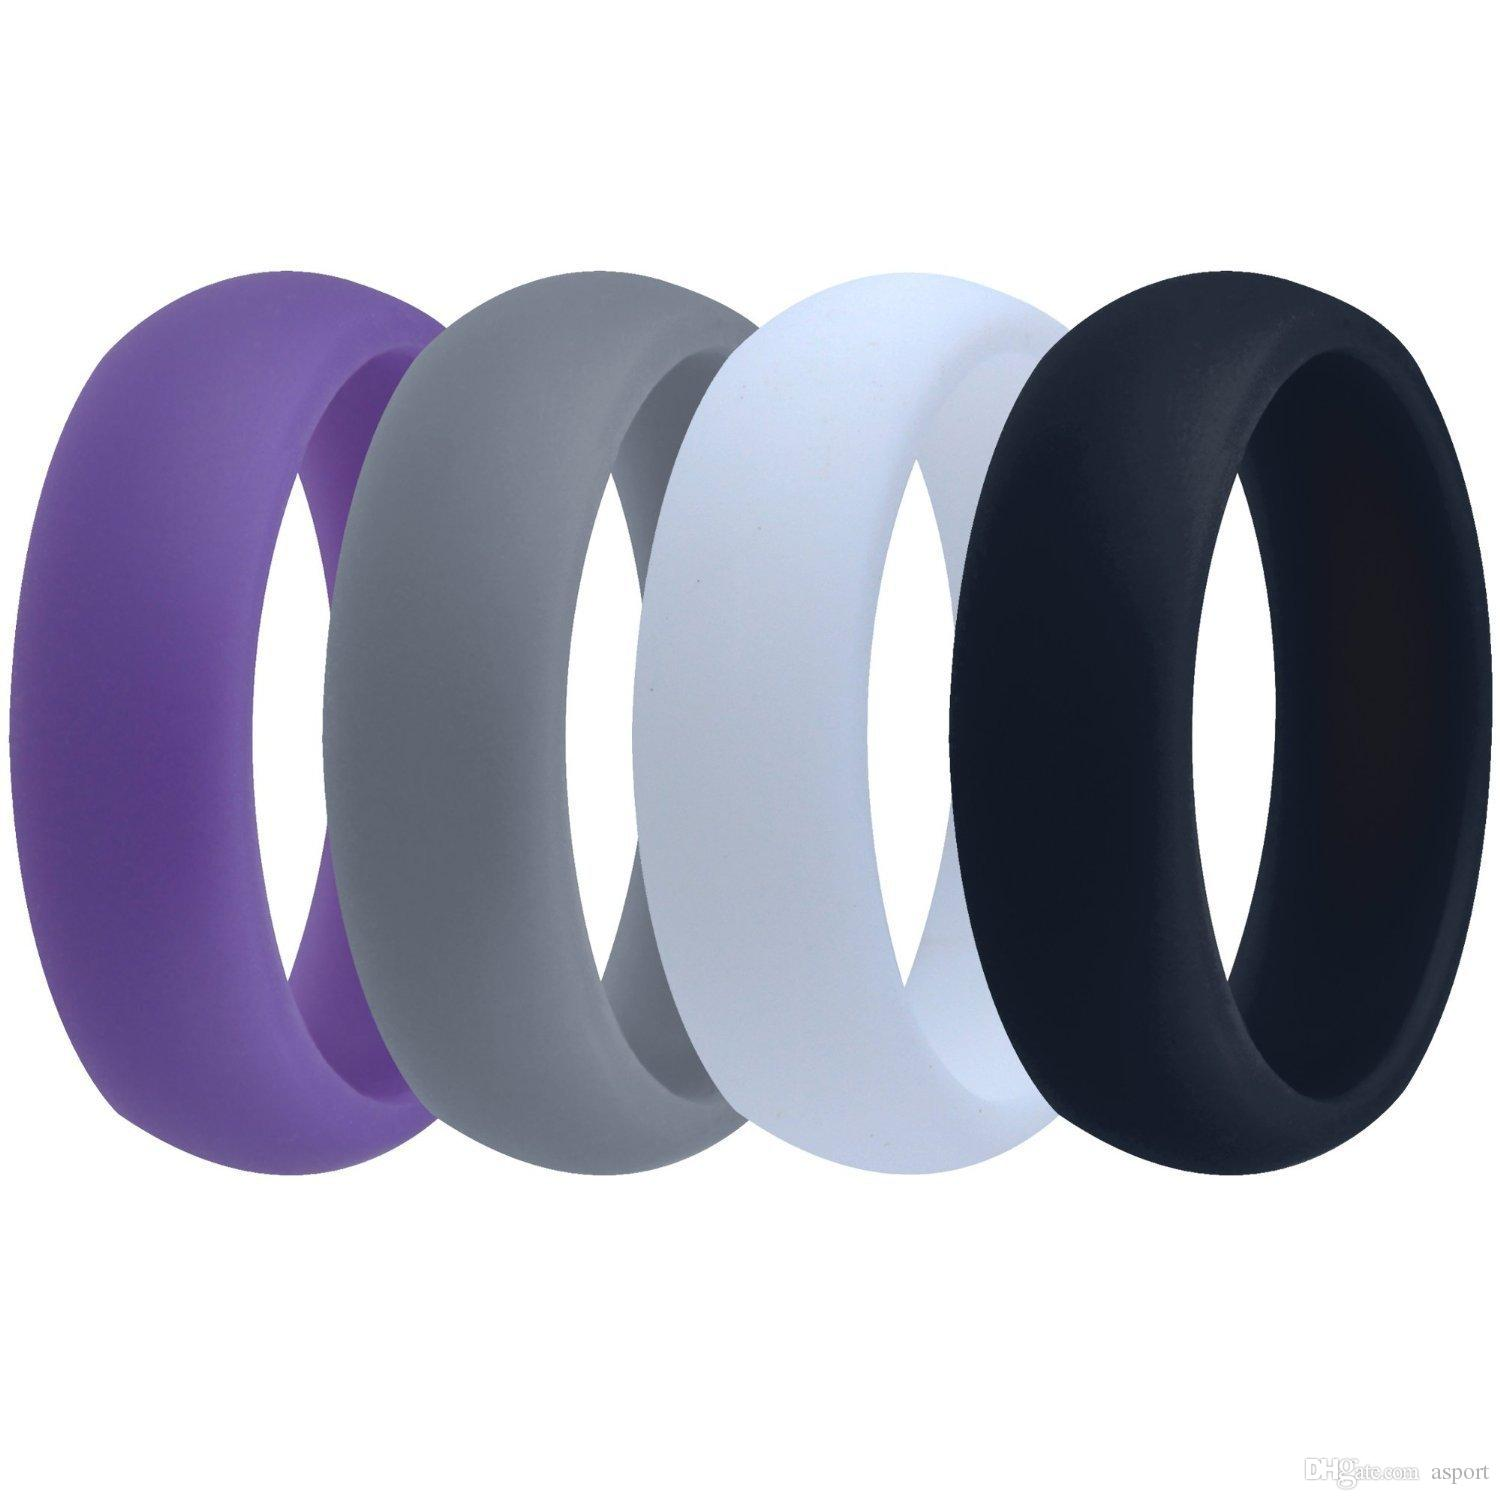 wedding band and just take on one of these do your work or fitness outdoor sports without restraint 9 made of waterproof material you can even wear